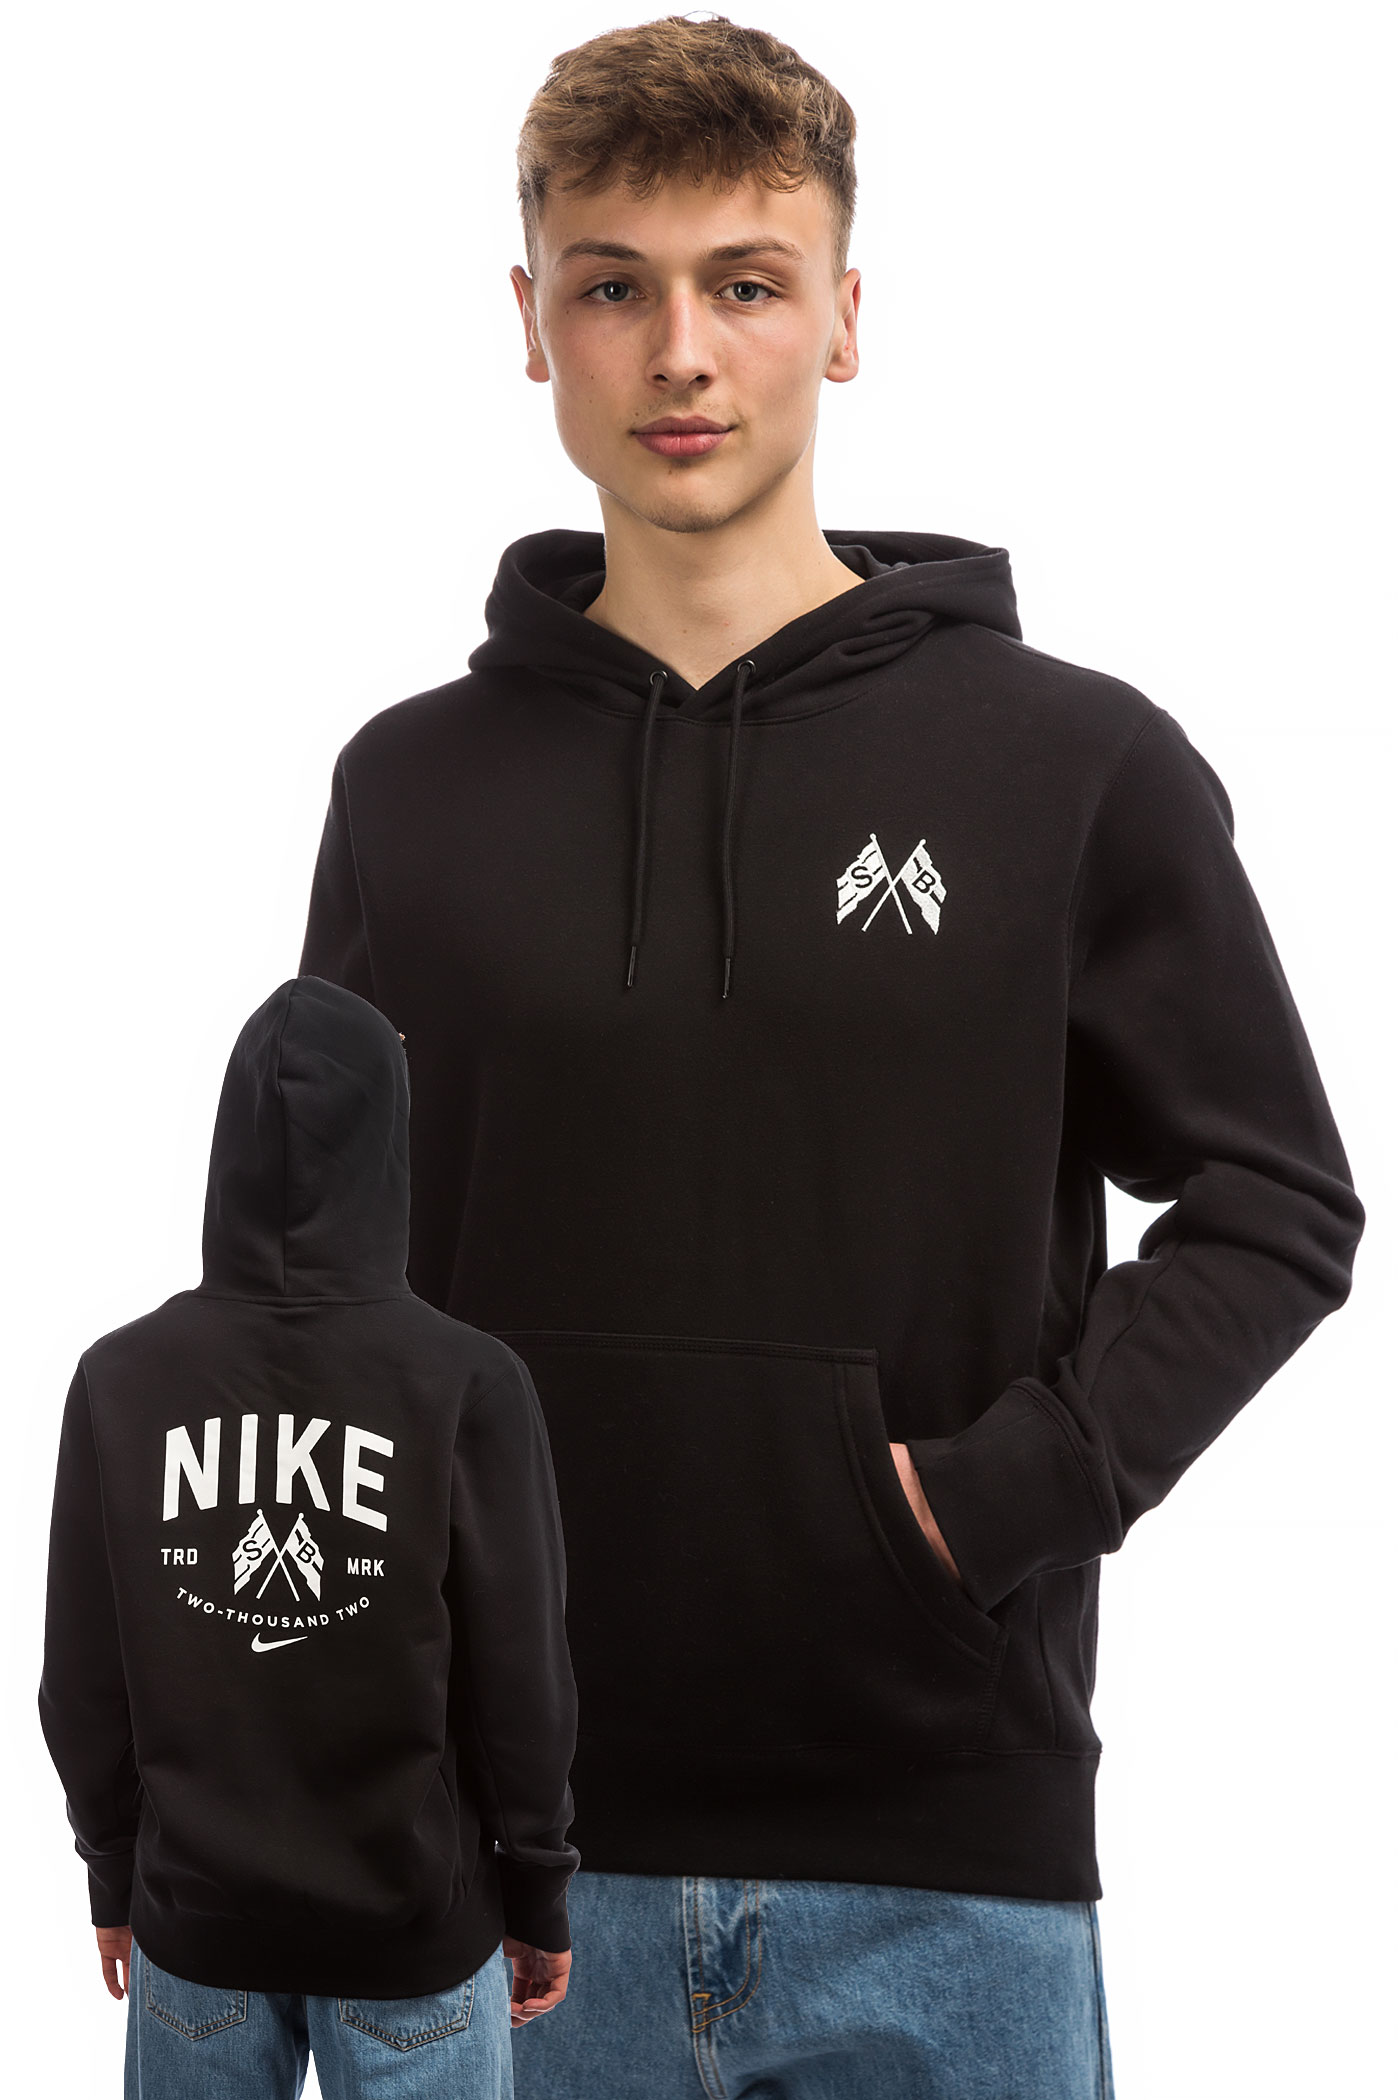 sweatshirt White Sb Avec Capuchonblack Nike Hooded Zip Summit Top kXiOuPZ